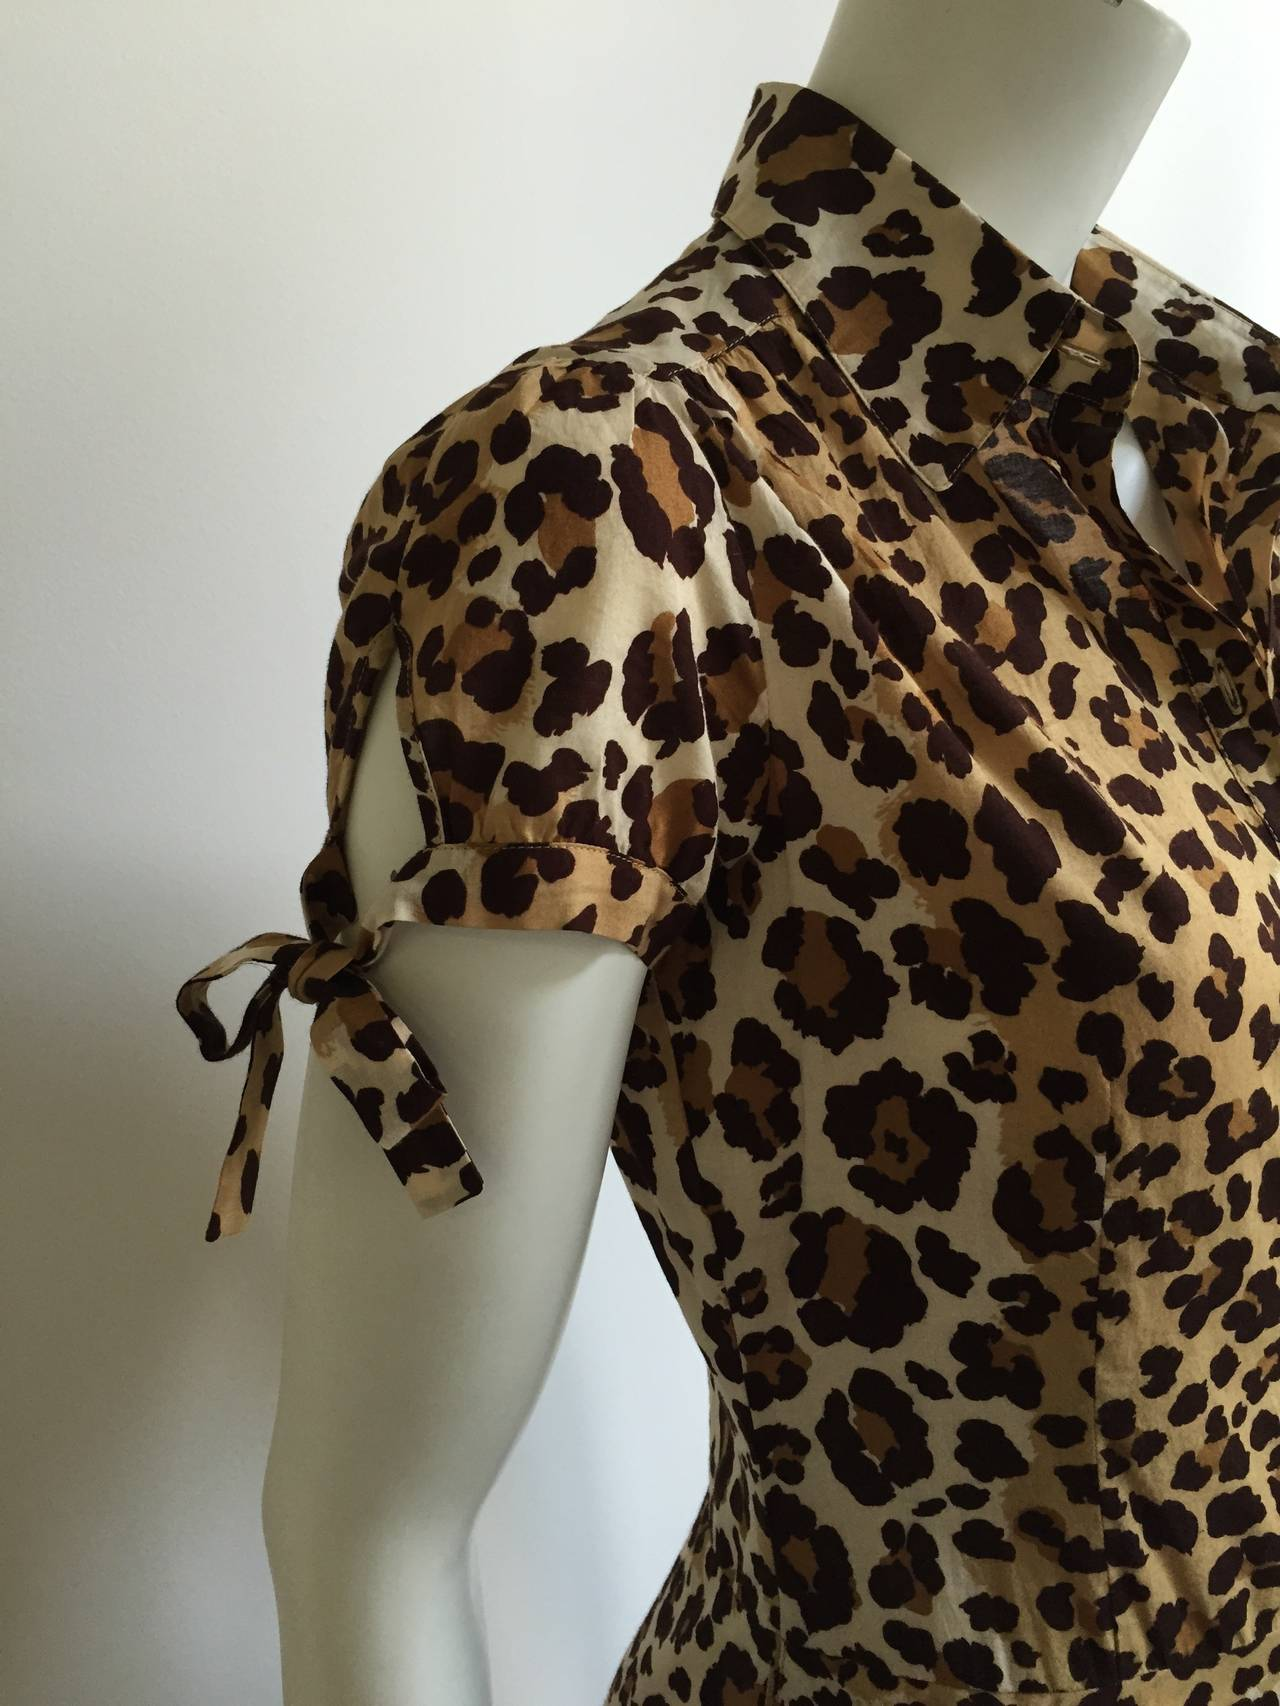 Moschino cheetah print dress with pockets size 6. 5